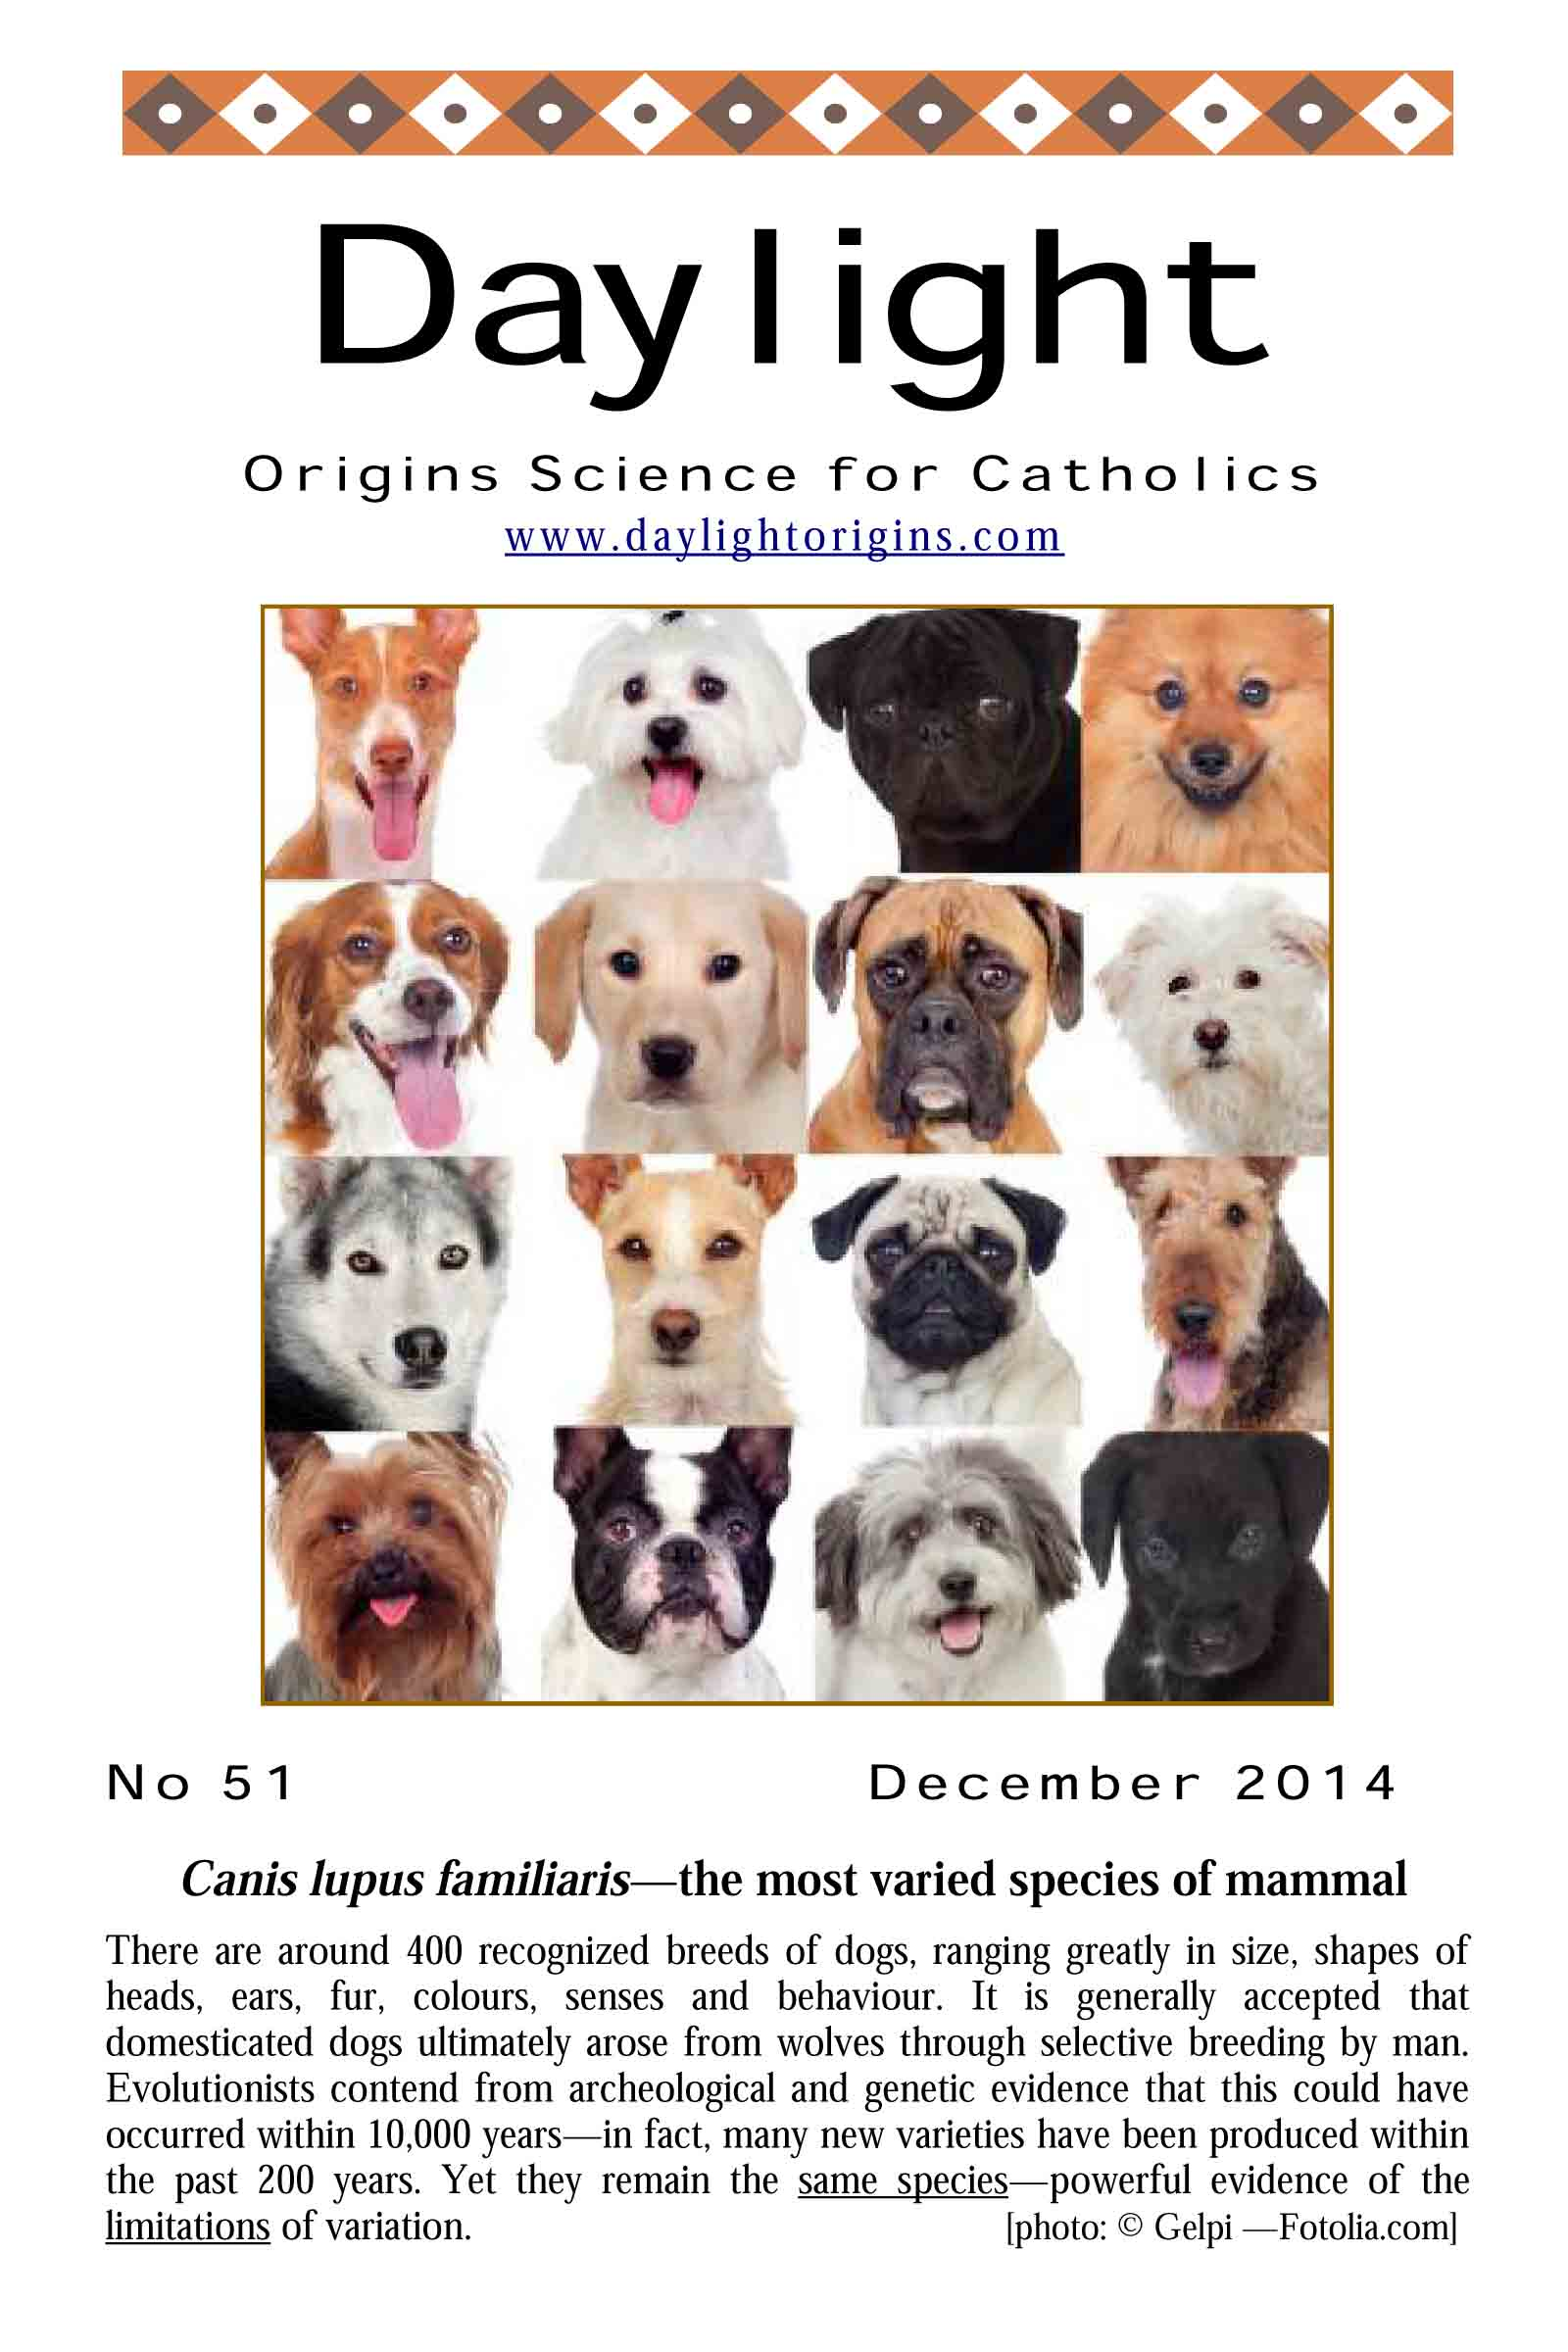 Dayligh magazine edition on dog species